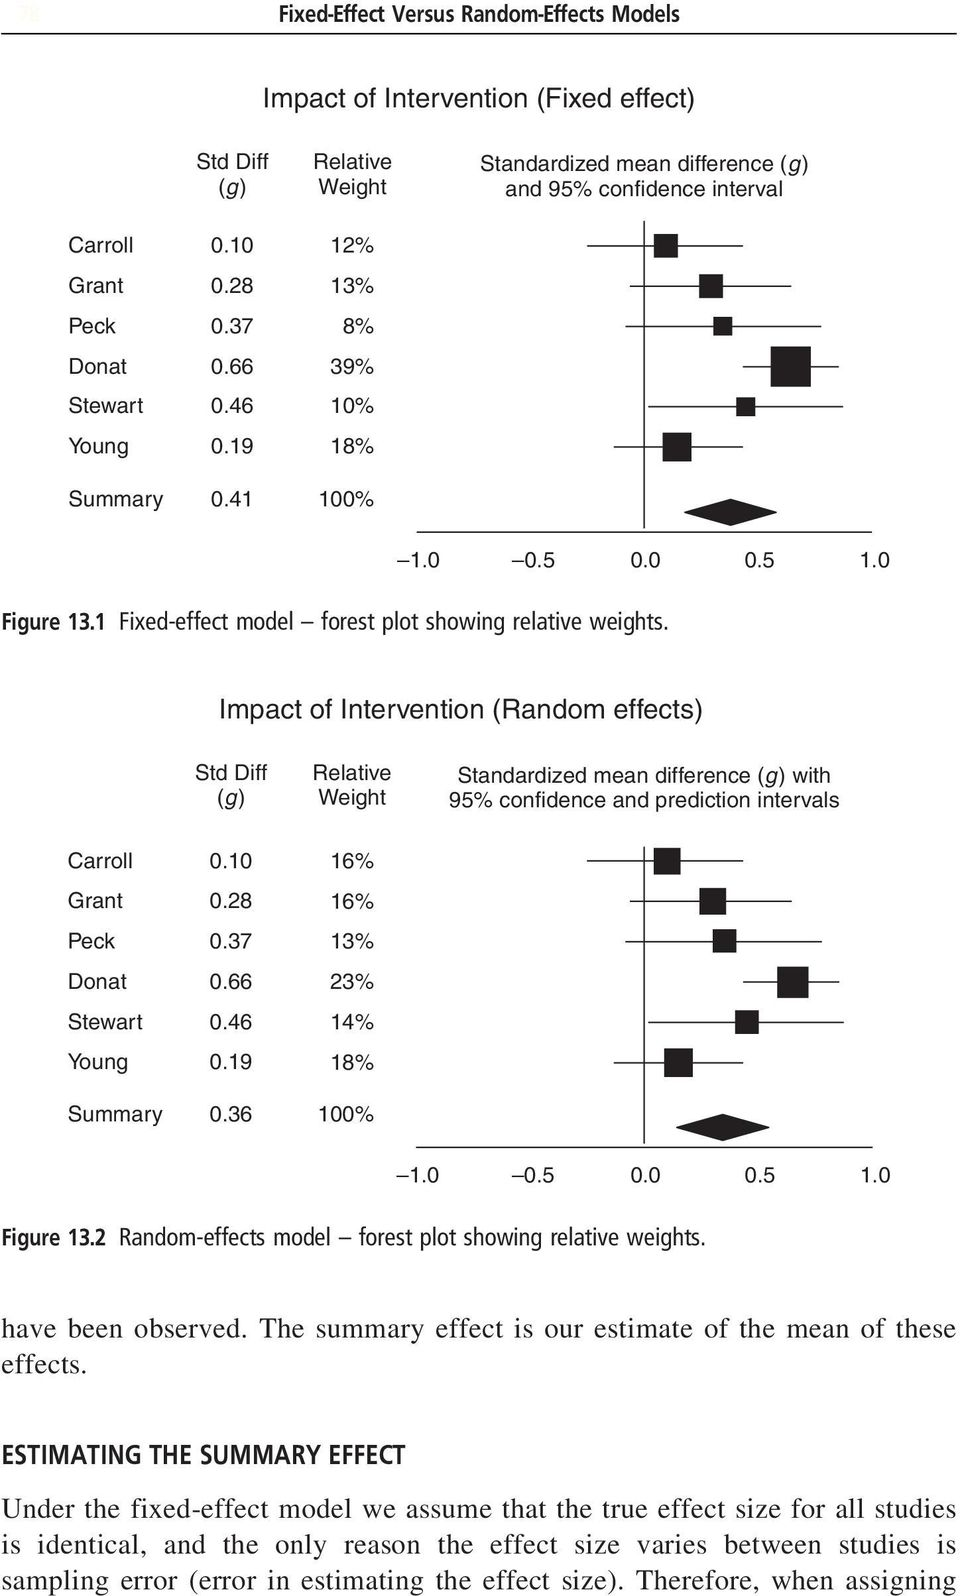 Impact of Intervention (Random effects) Std Diff (g) Relative Weight Standardized mean difference (g) with 95% confidence and prediction intervals Carroll Grant Peck Donat Stewart Young Summary 0.